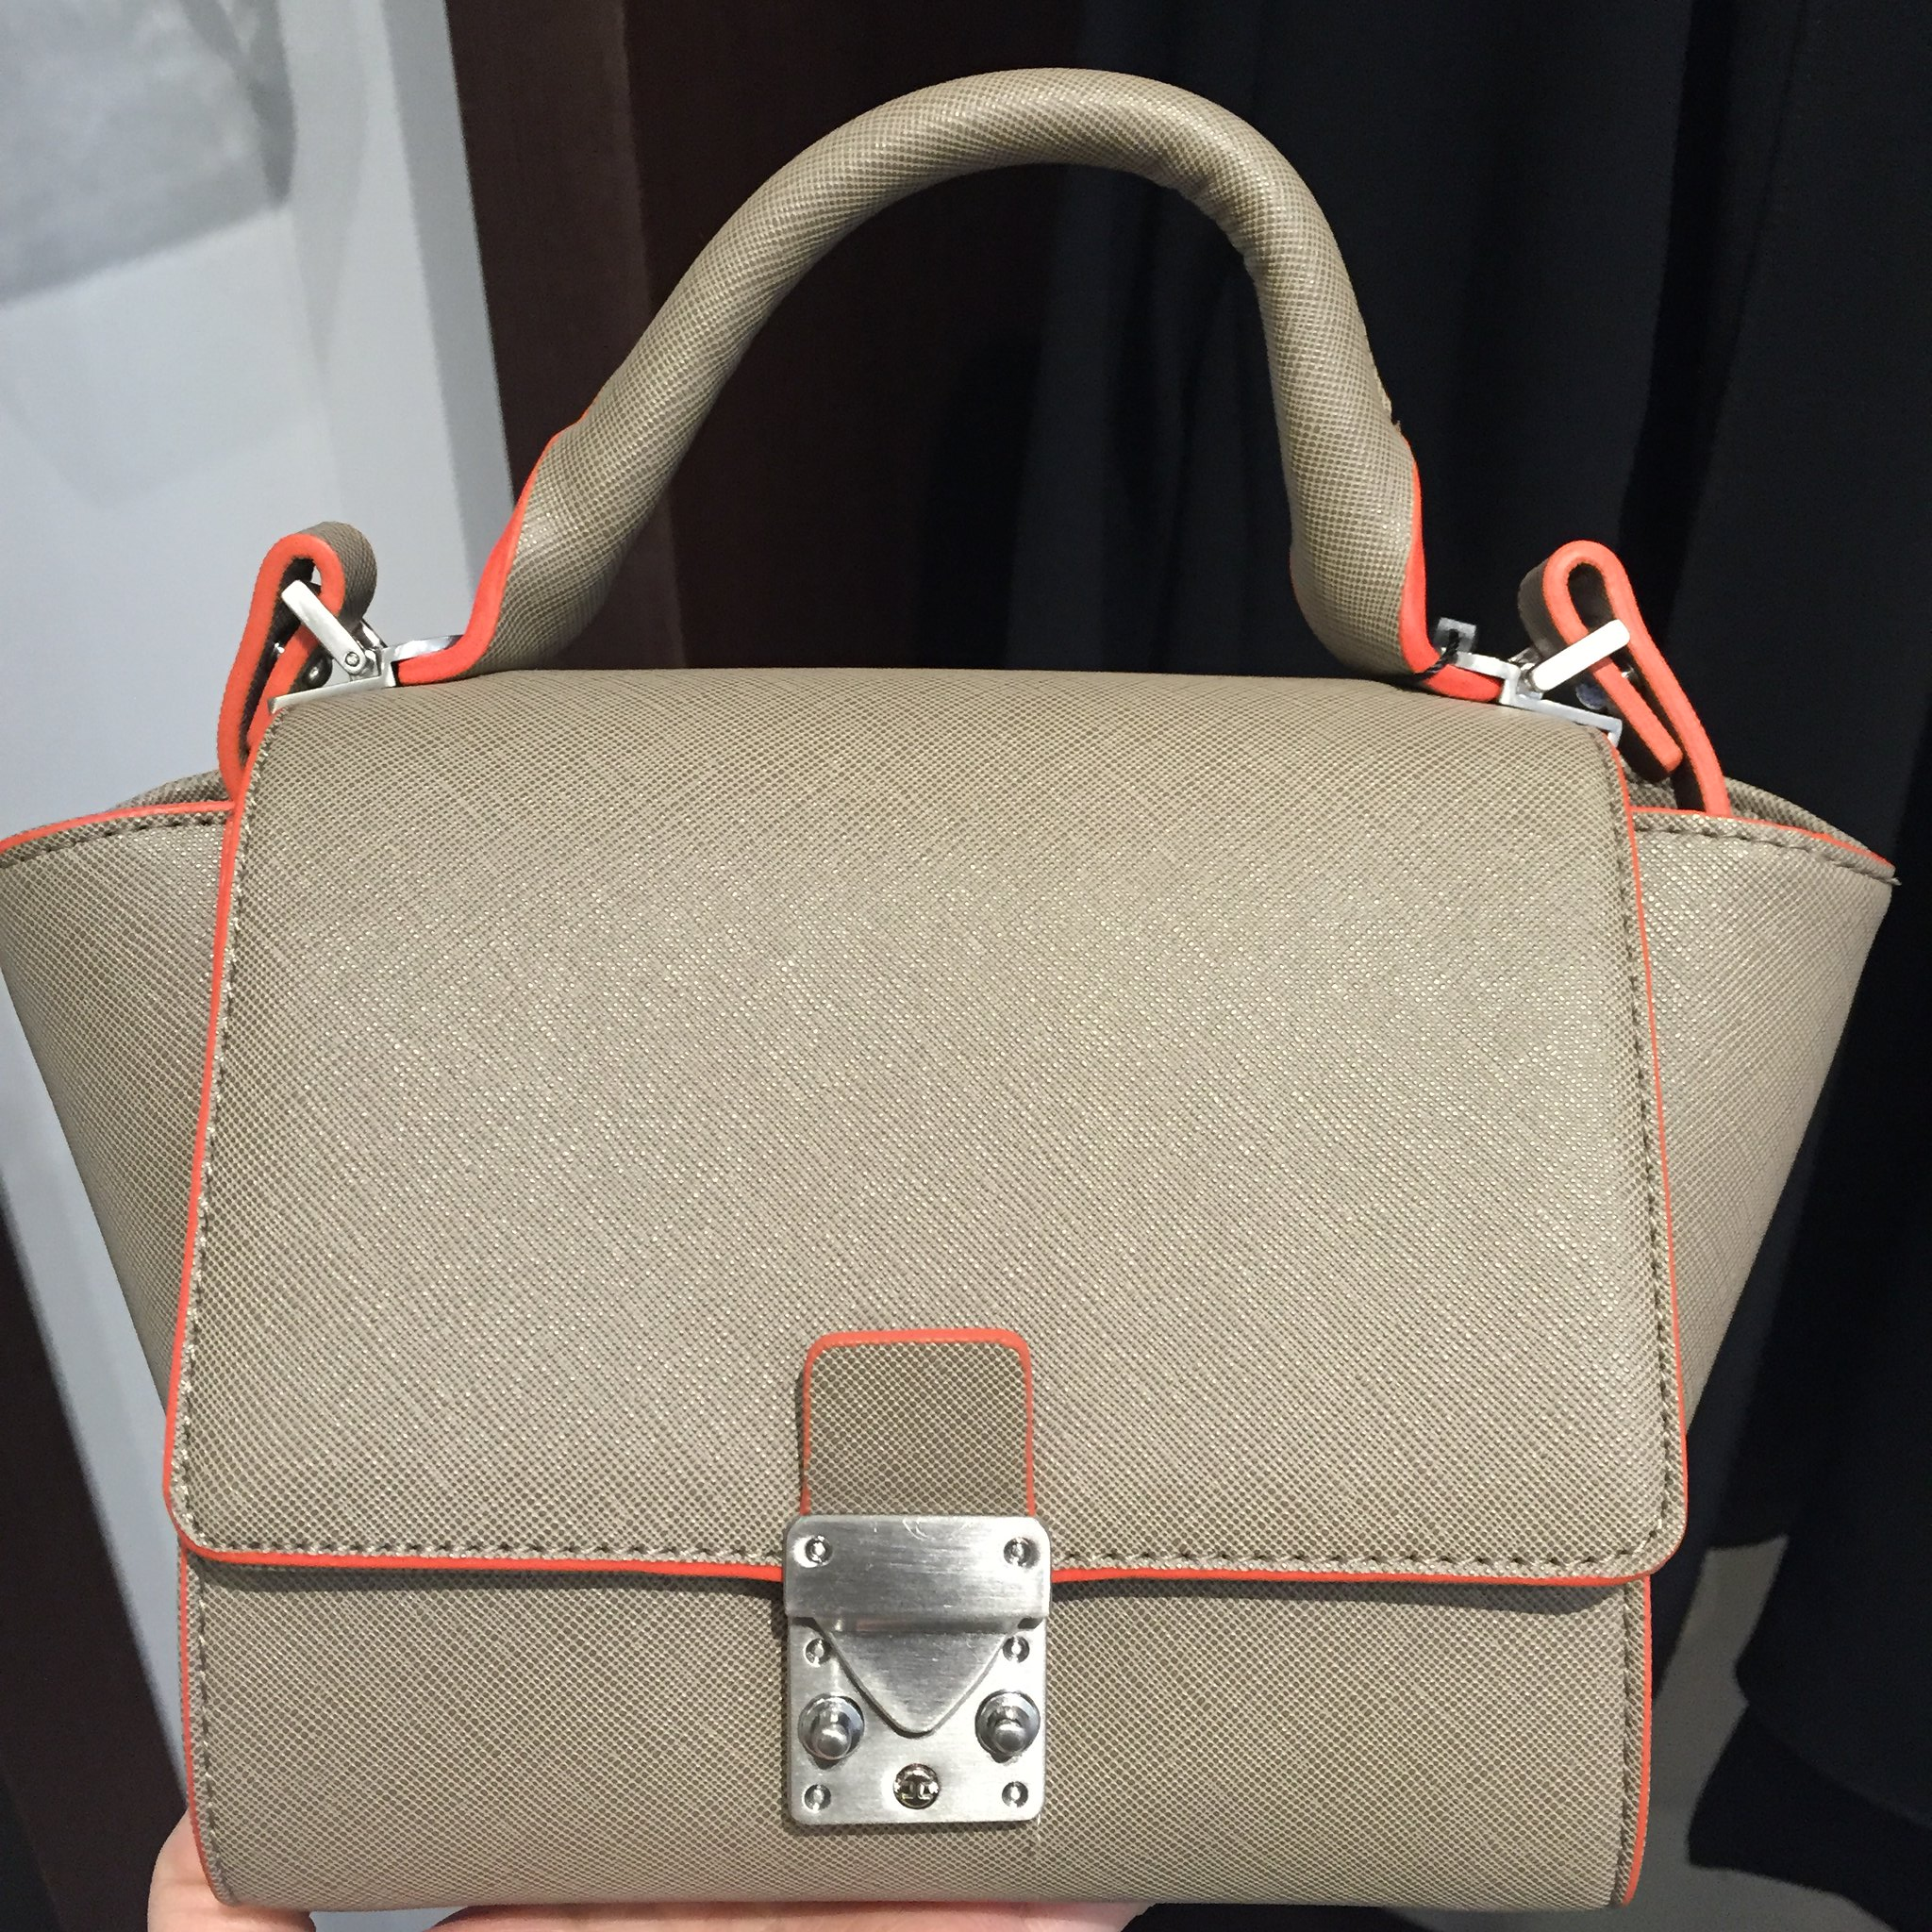 Zara Structured Mini Messenger Bag with buckle in taupe (item no. 4127/004)